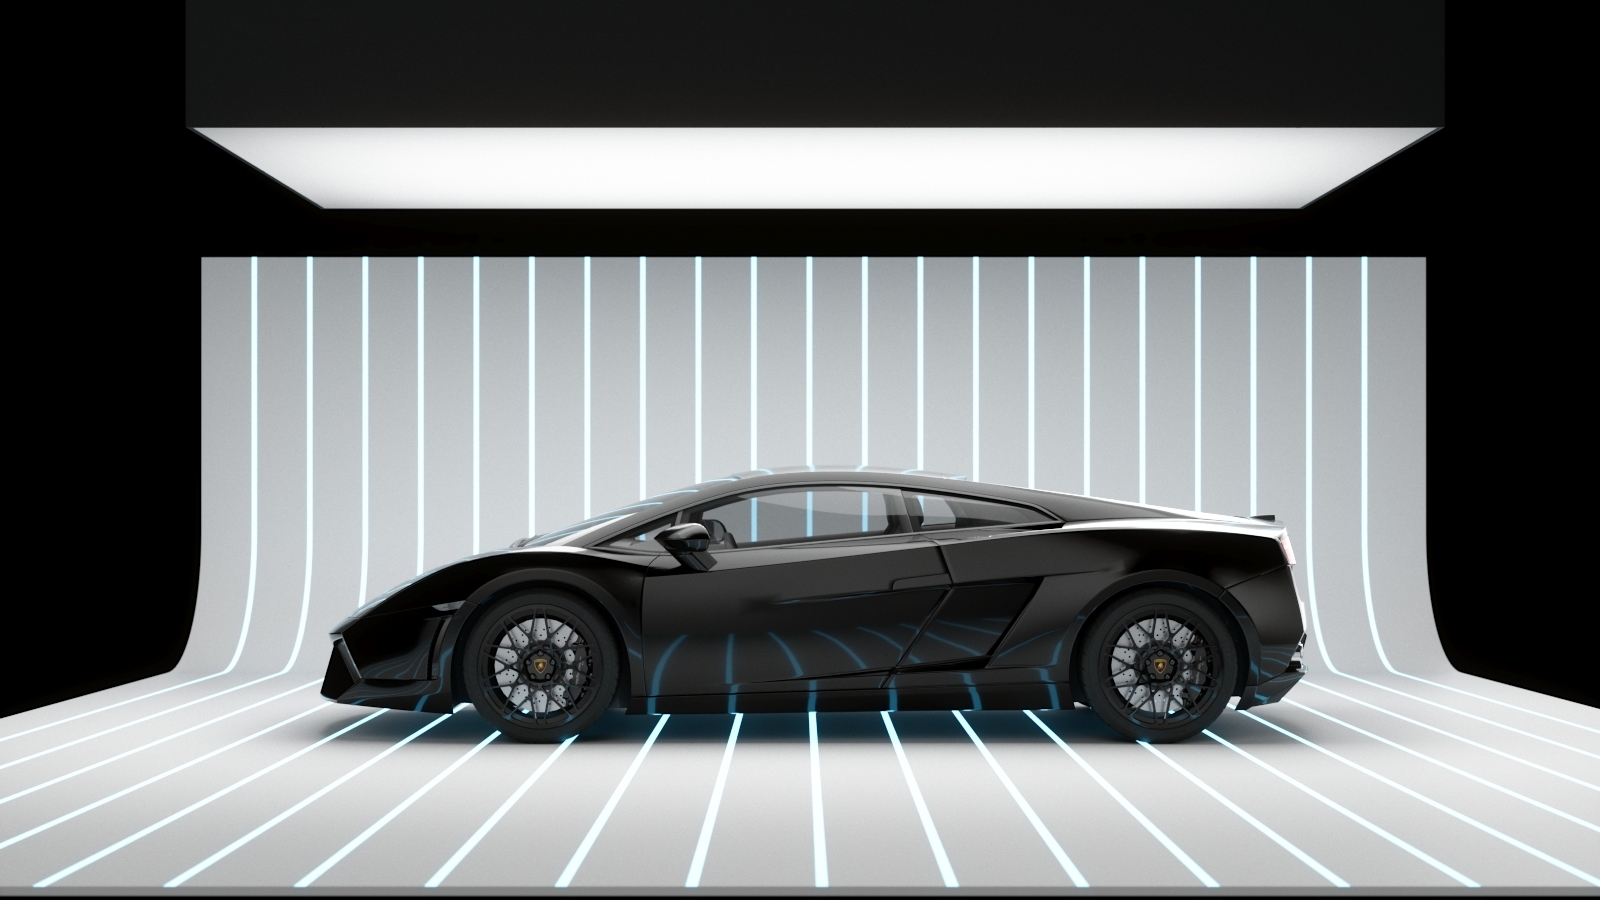 The Supercar Capsule